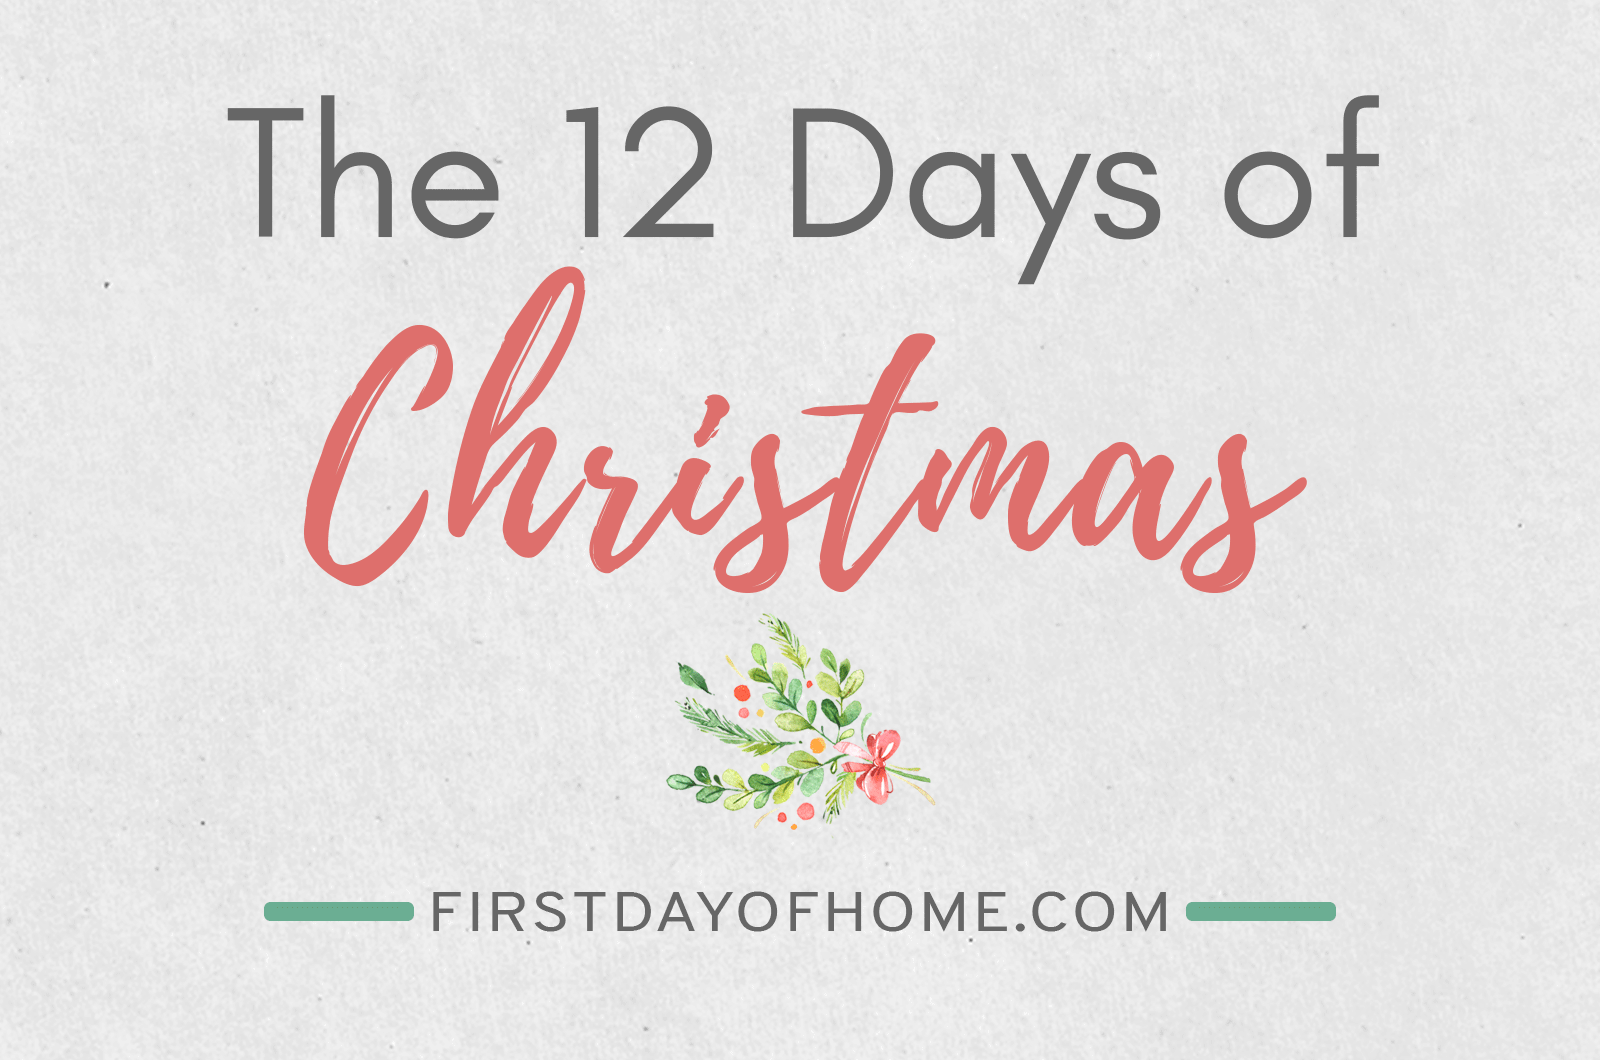 12 Days of Christmas lyrics printable and gift ideas